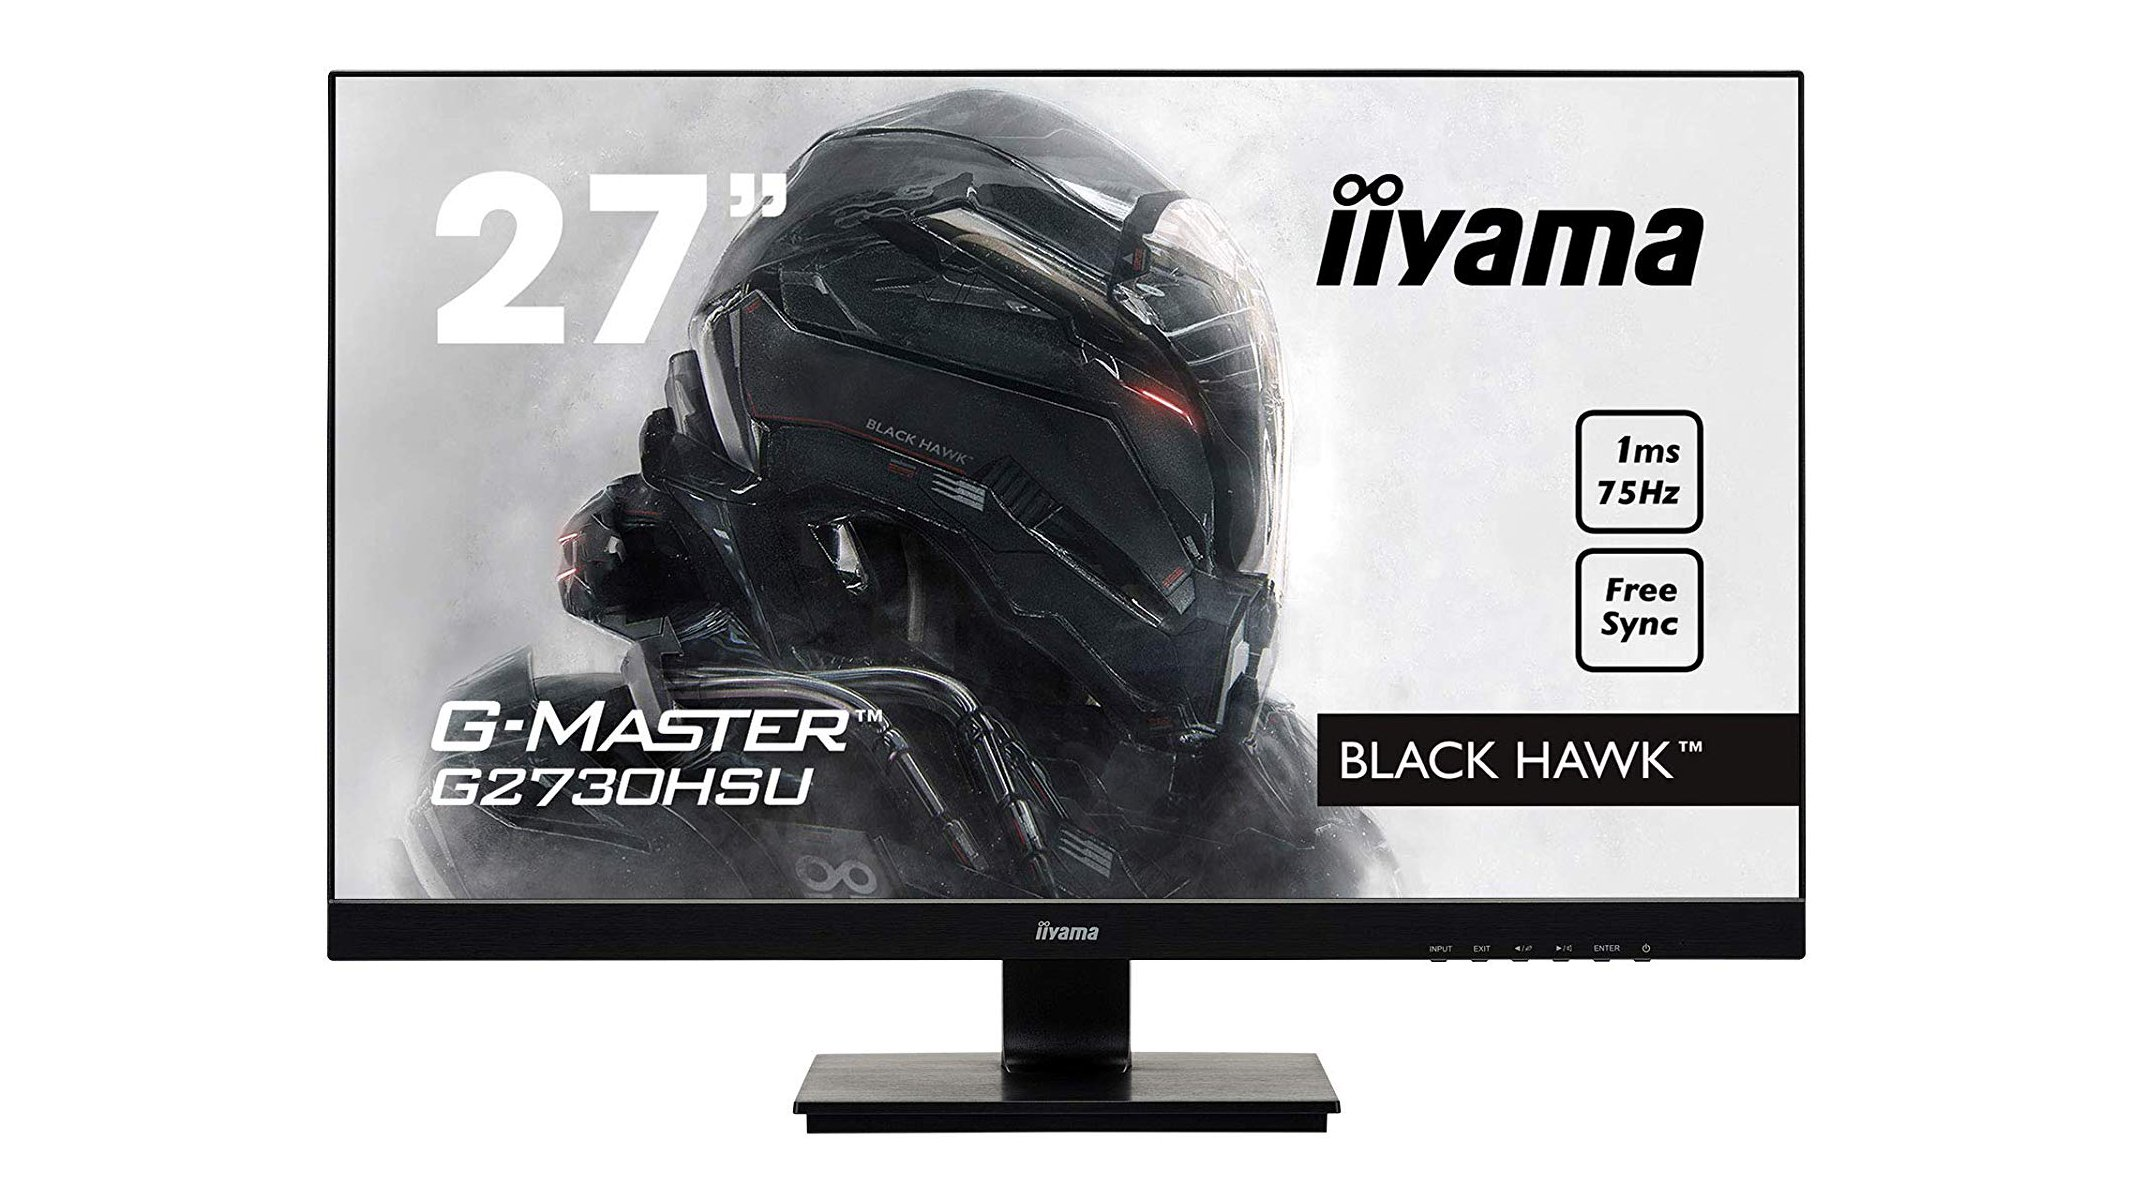 Best monitor deals UK: Grab a cheap gaming monitor in 2019